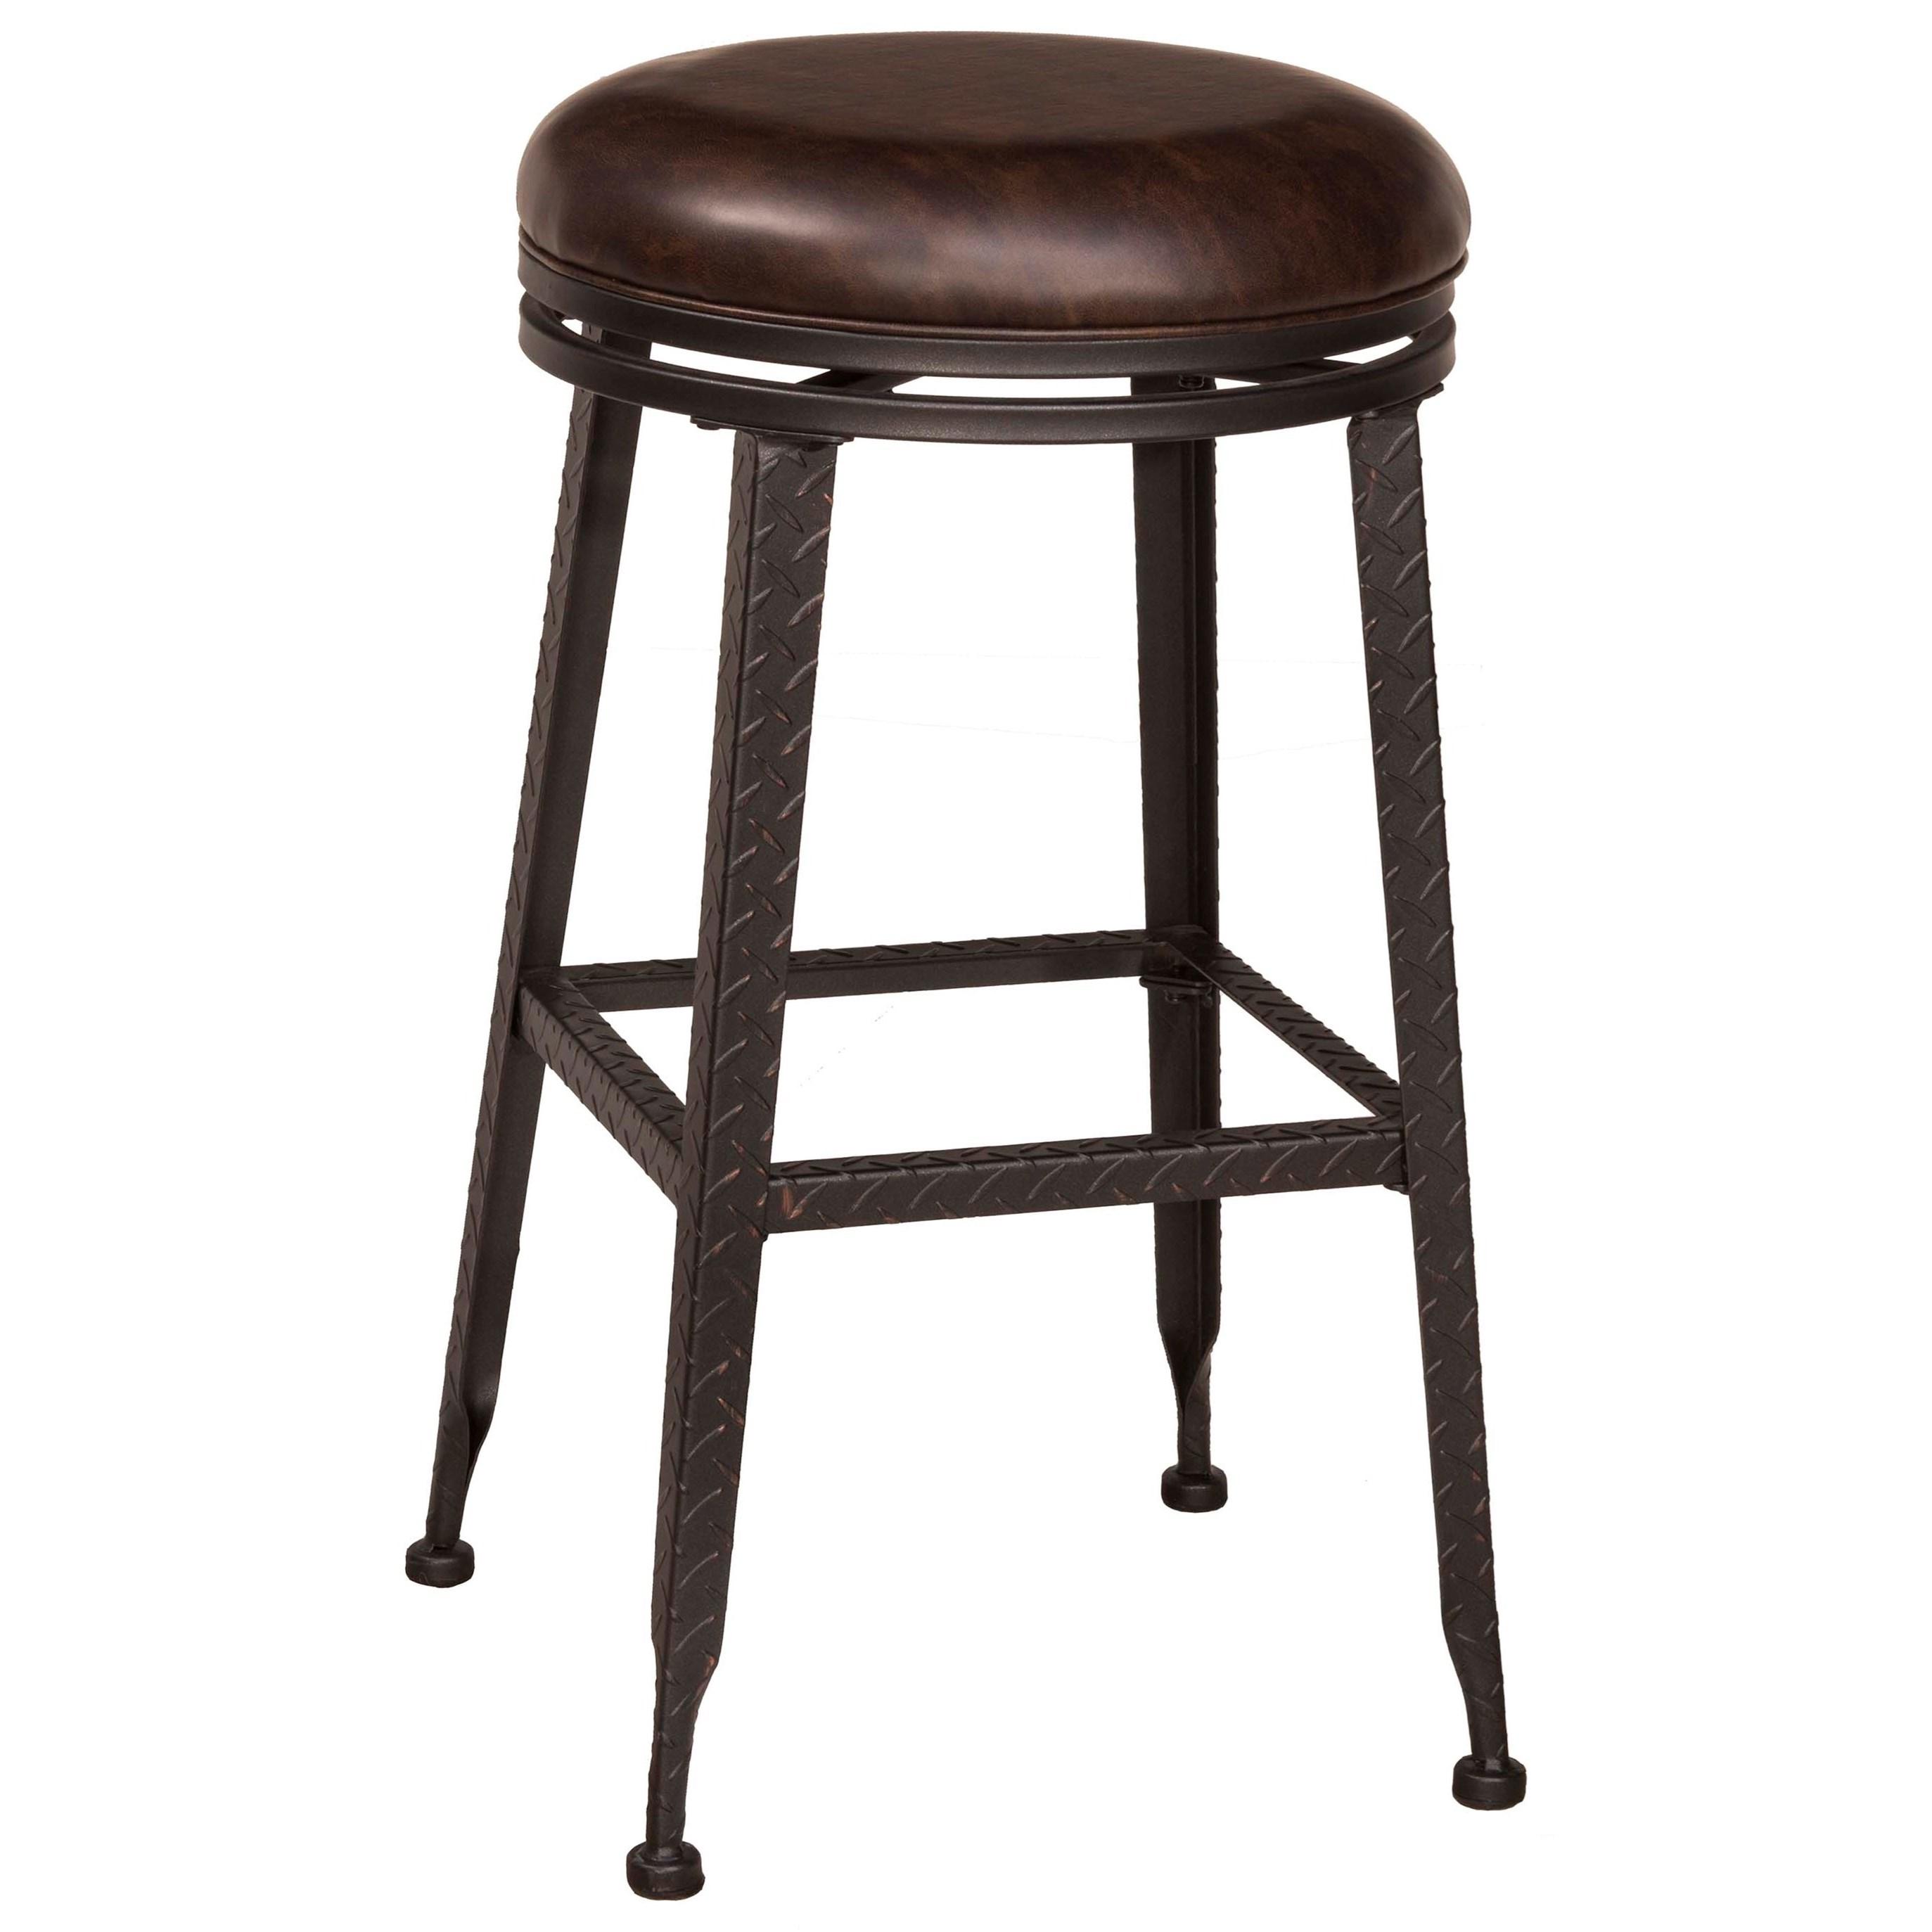 Swivel Bar Chairs Backless Bar Stools Black Metal With Copper Highlights Backless Swivel Bar Stool By Hillsdale At Boulevard Home Furnishings